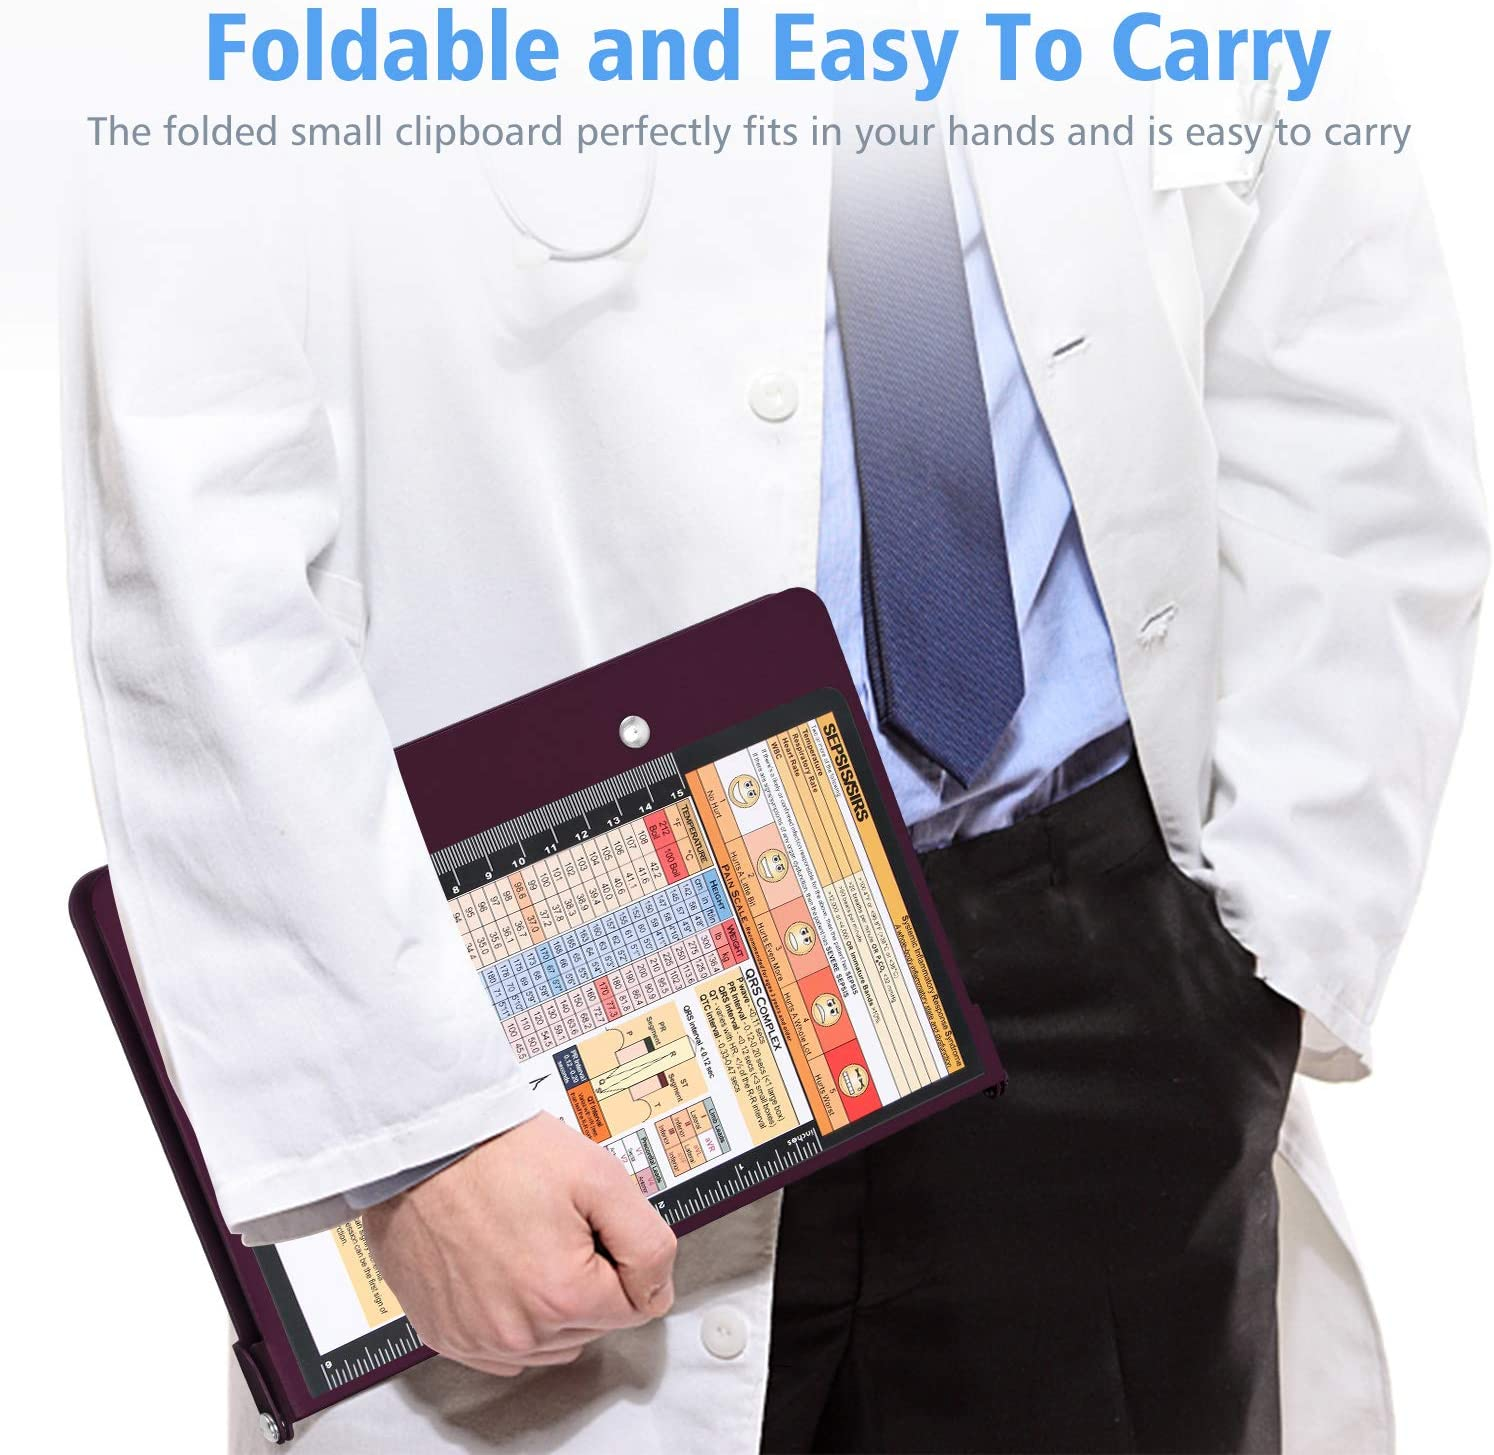 Wine Nursing Edition Clipboard with Quick Medical Reference Form Clinical Memo Full Size Foldable